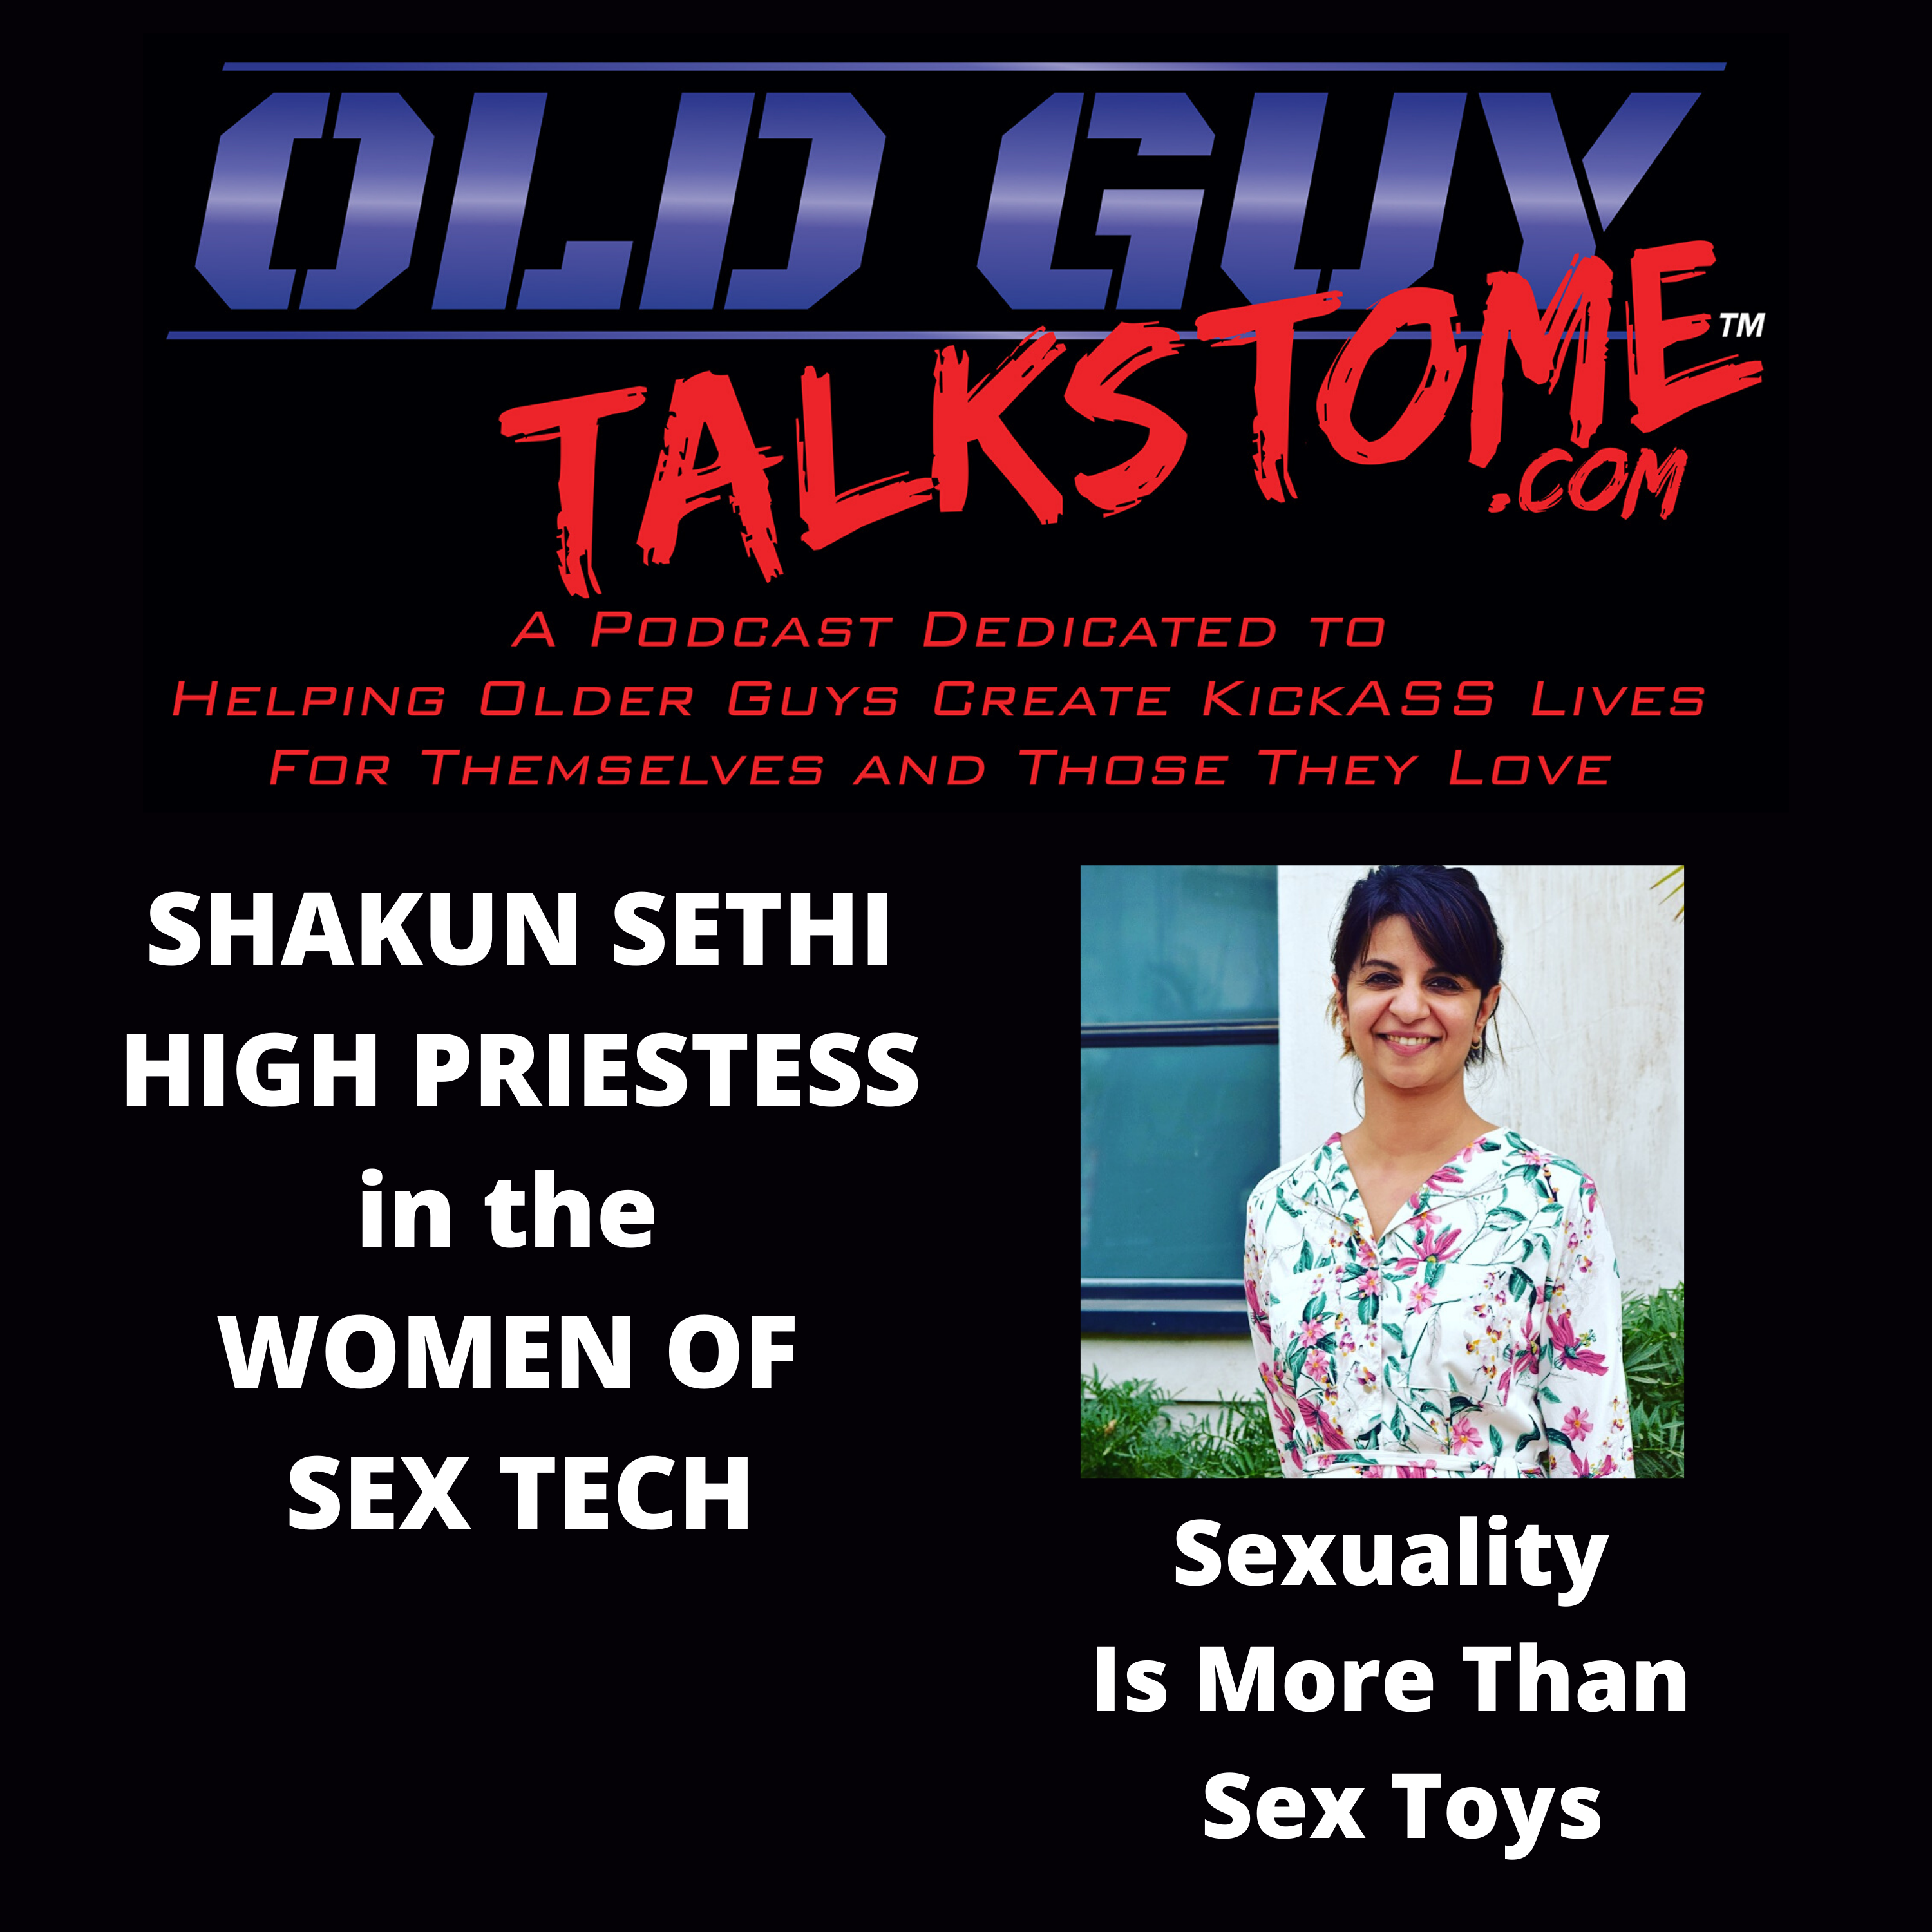 OldGuyTalksToMe - It Is More Than Sex Toys